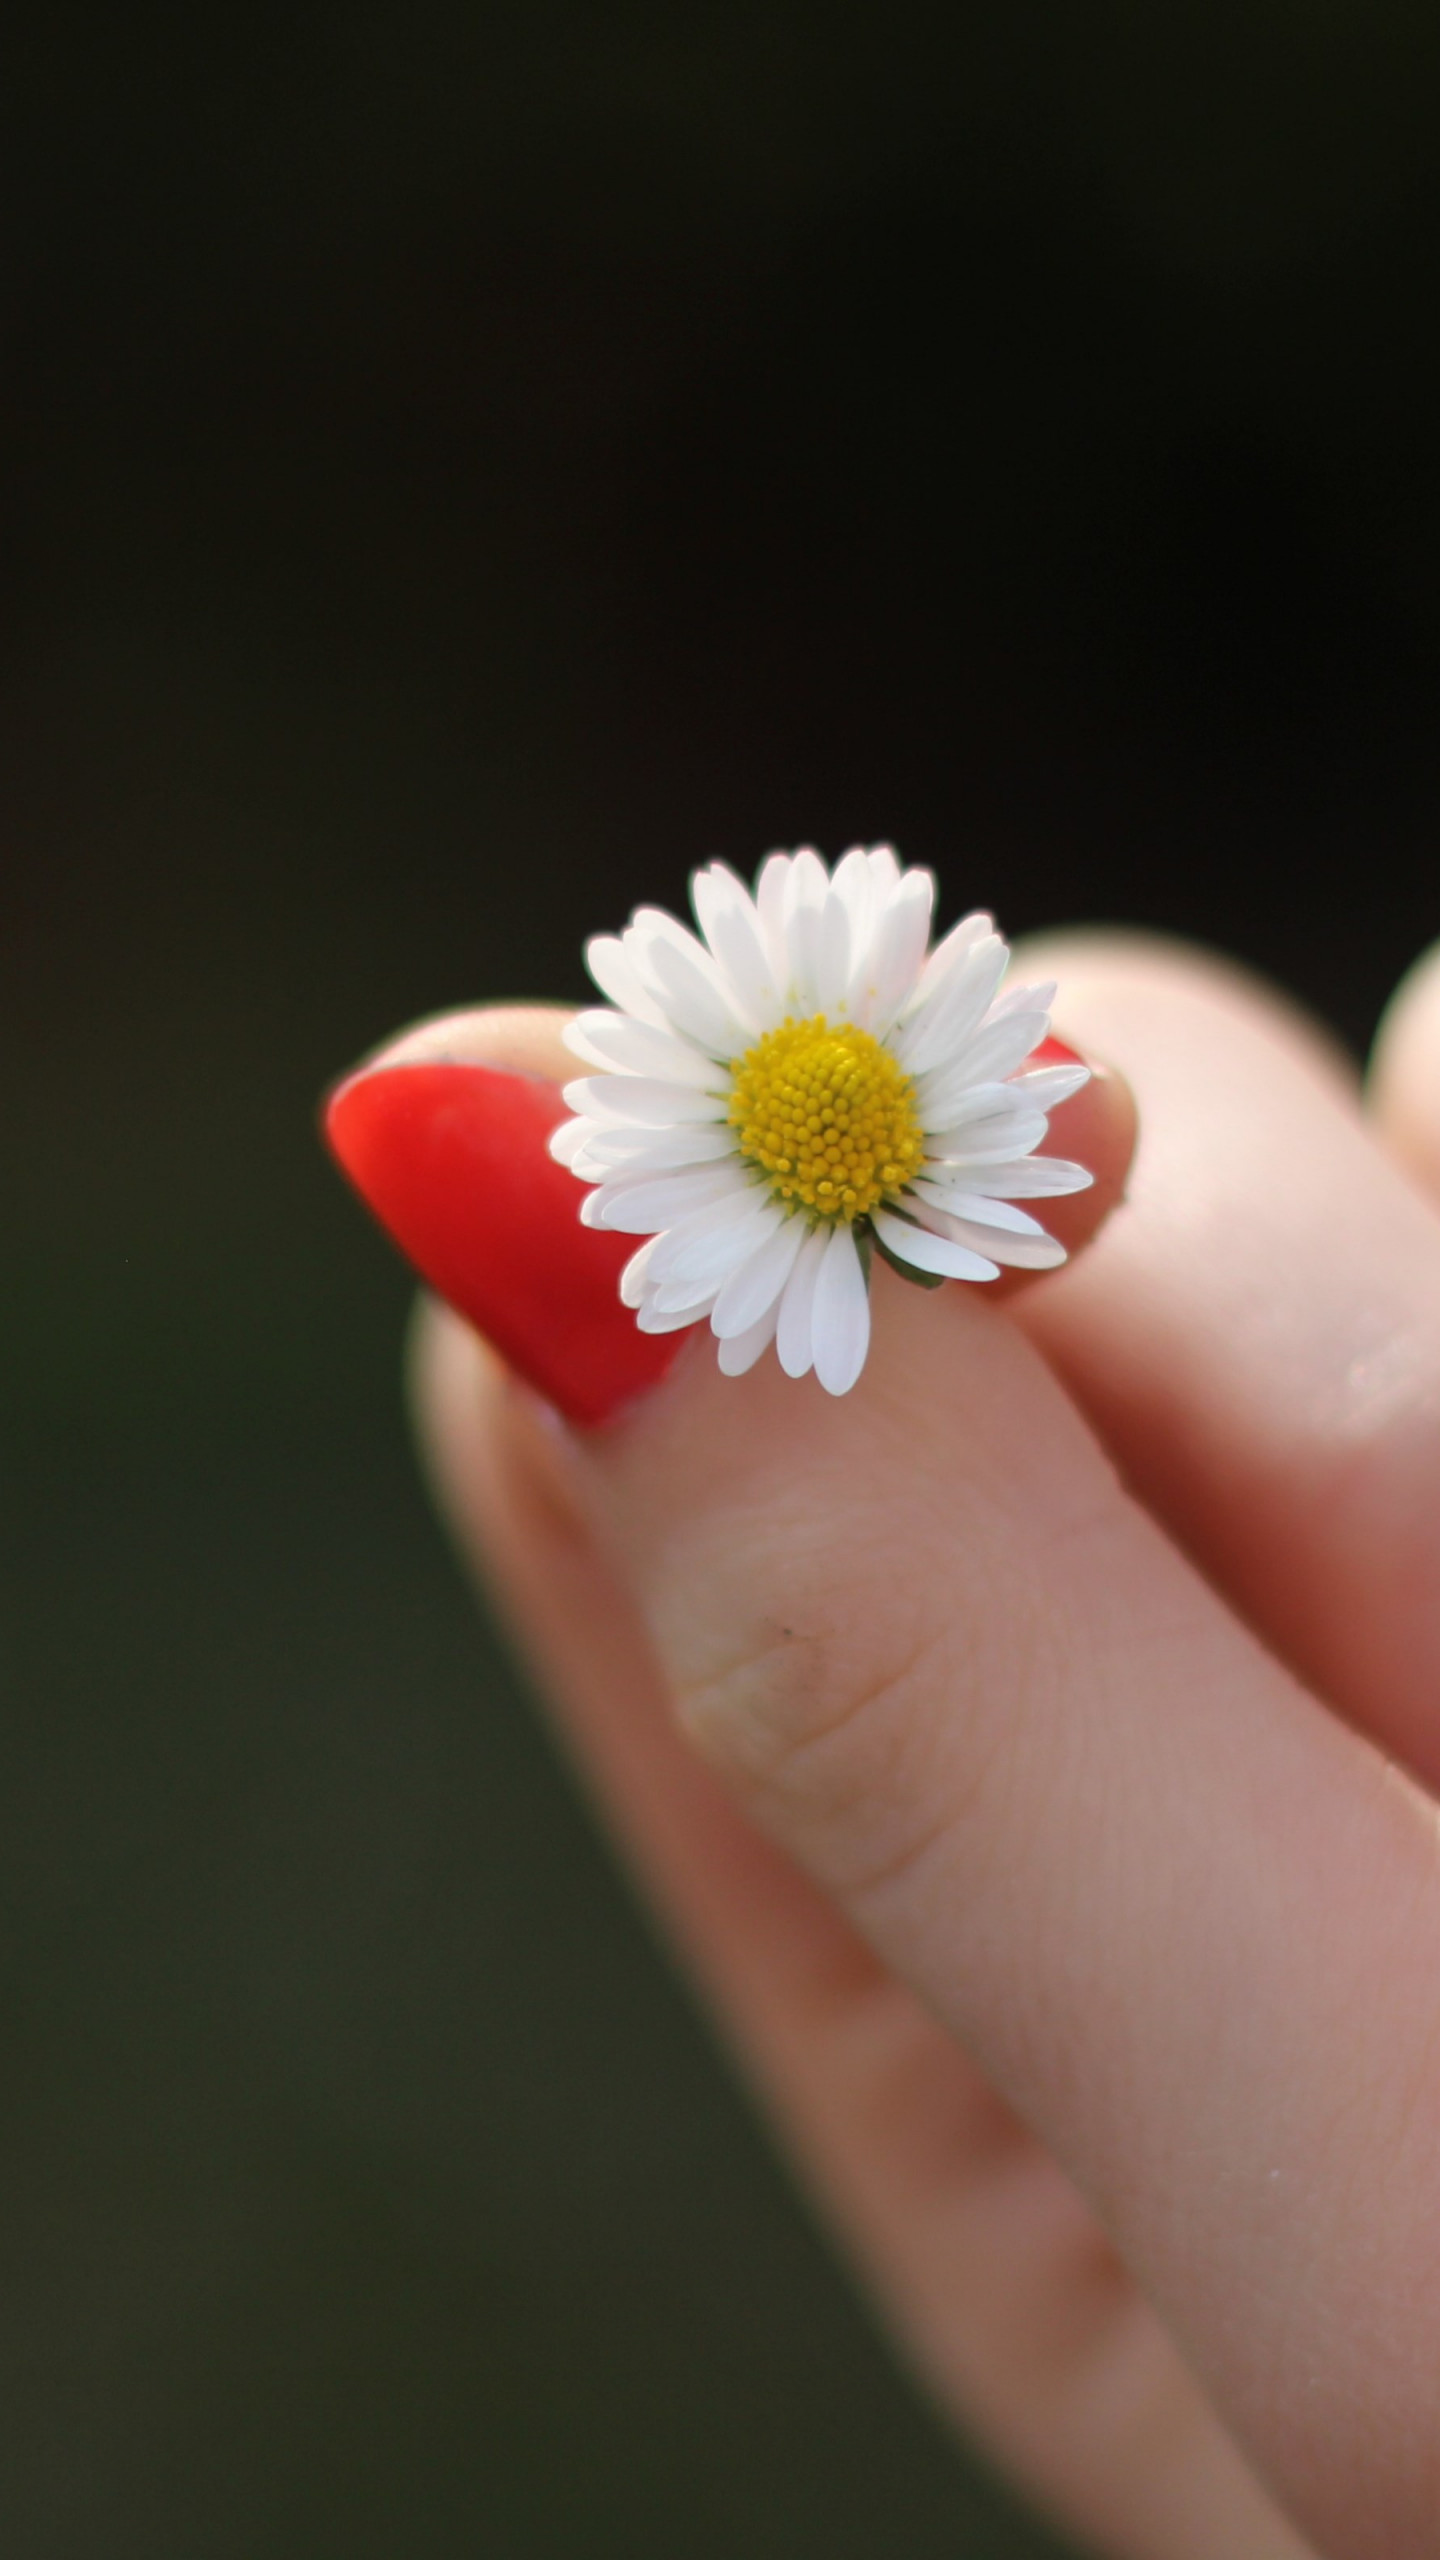 Girl with red nails and a daisy flower wallpaper 1440x2560